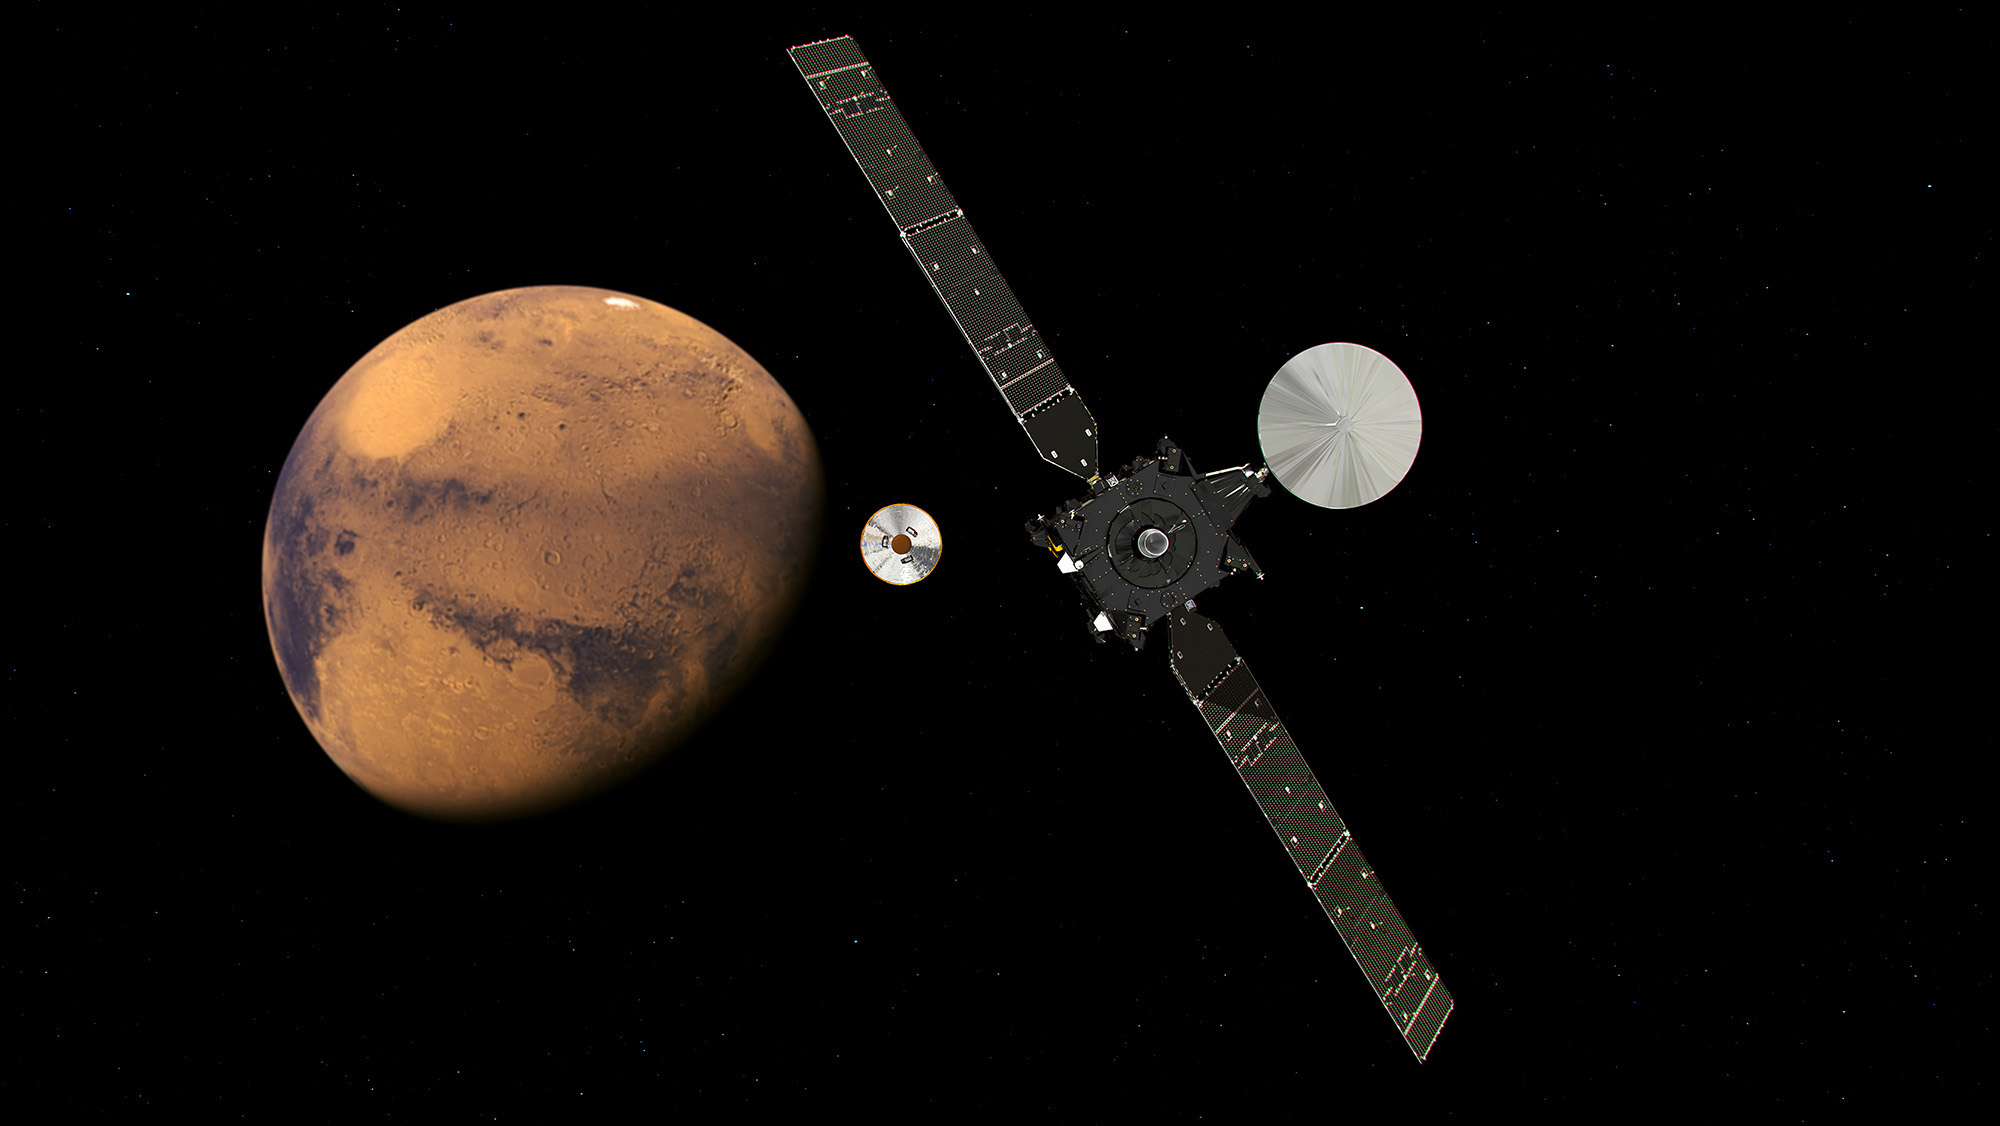 The ExoMars 2016 mission approaches the Red Planet